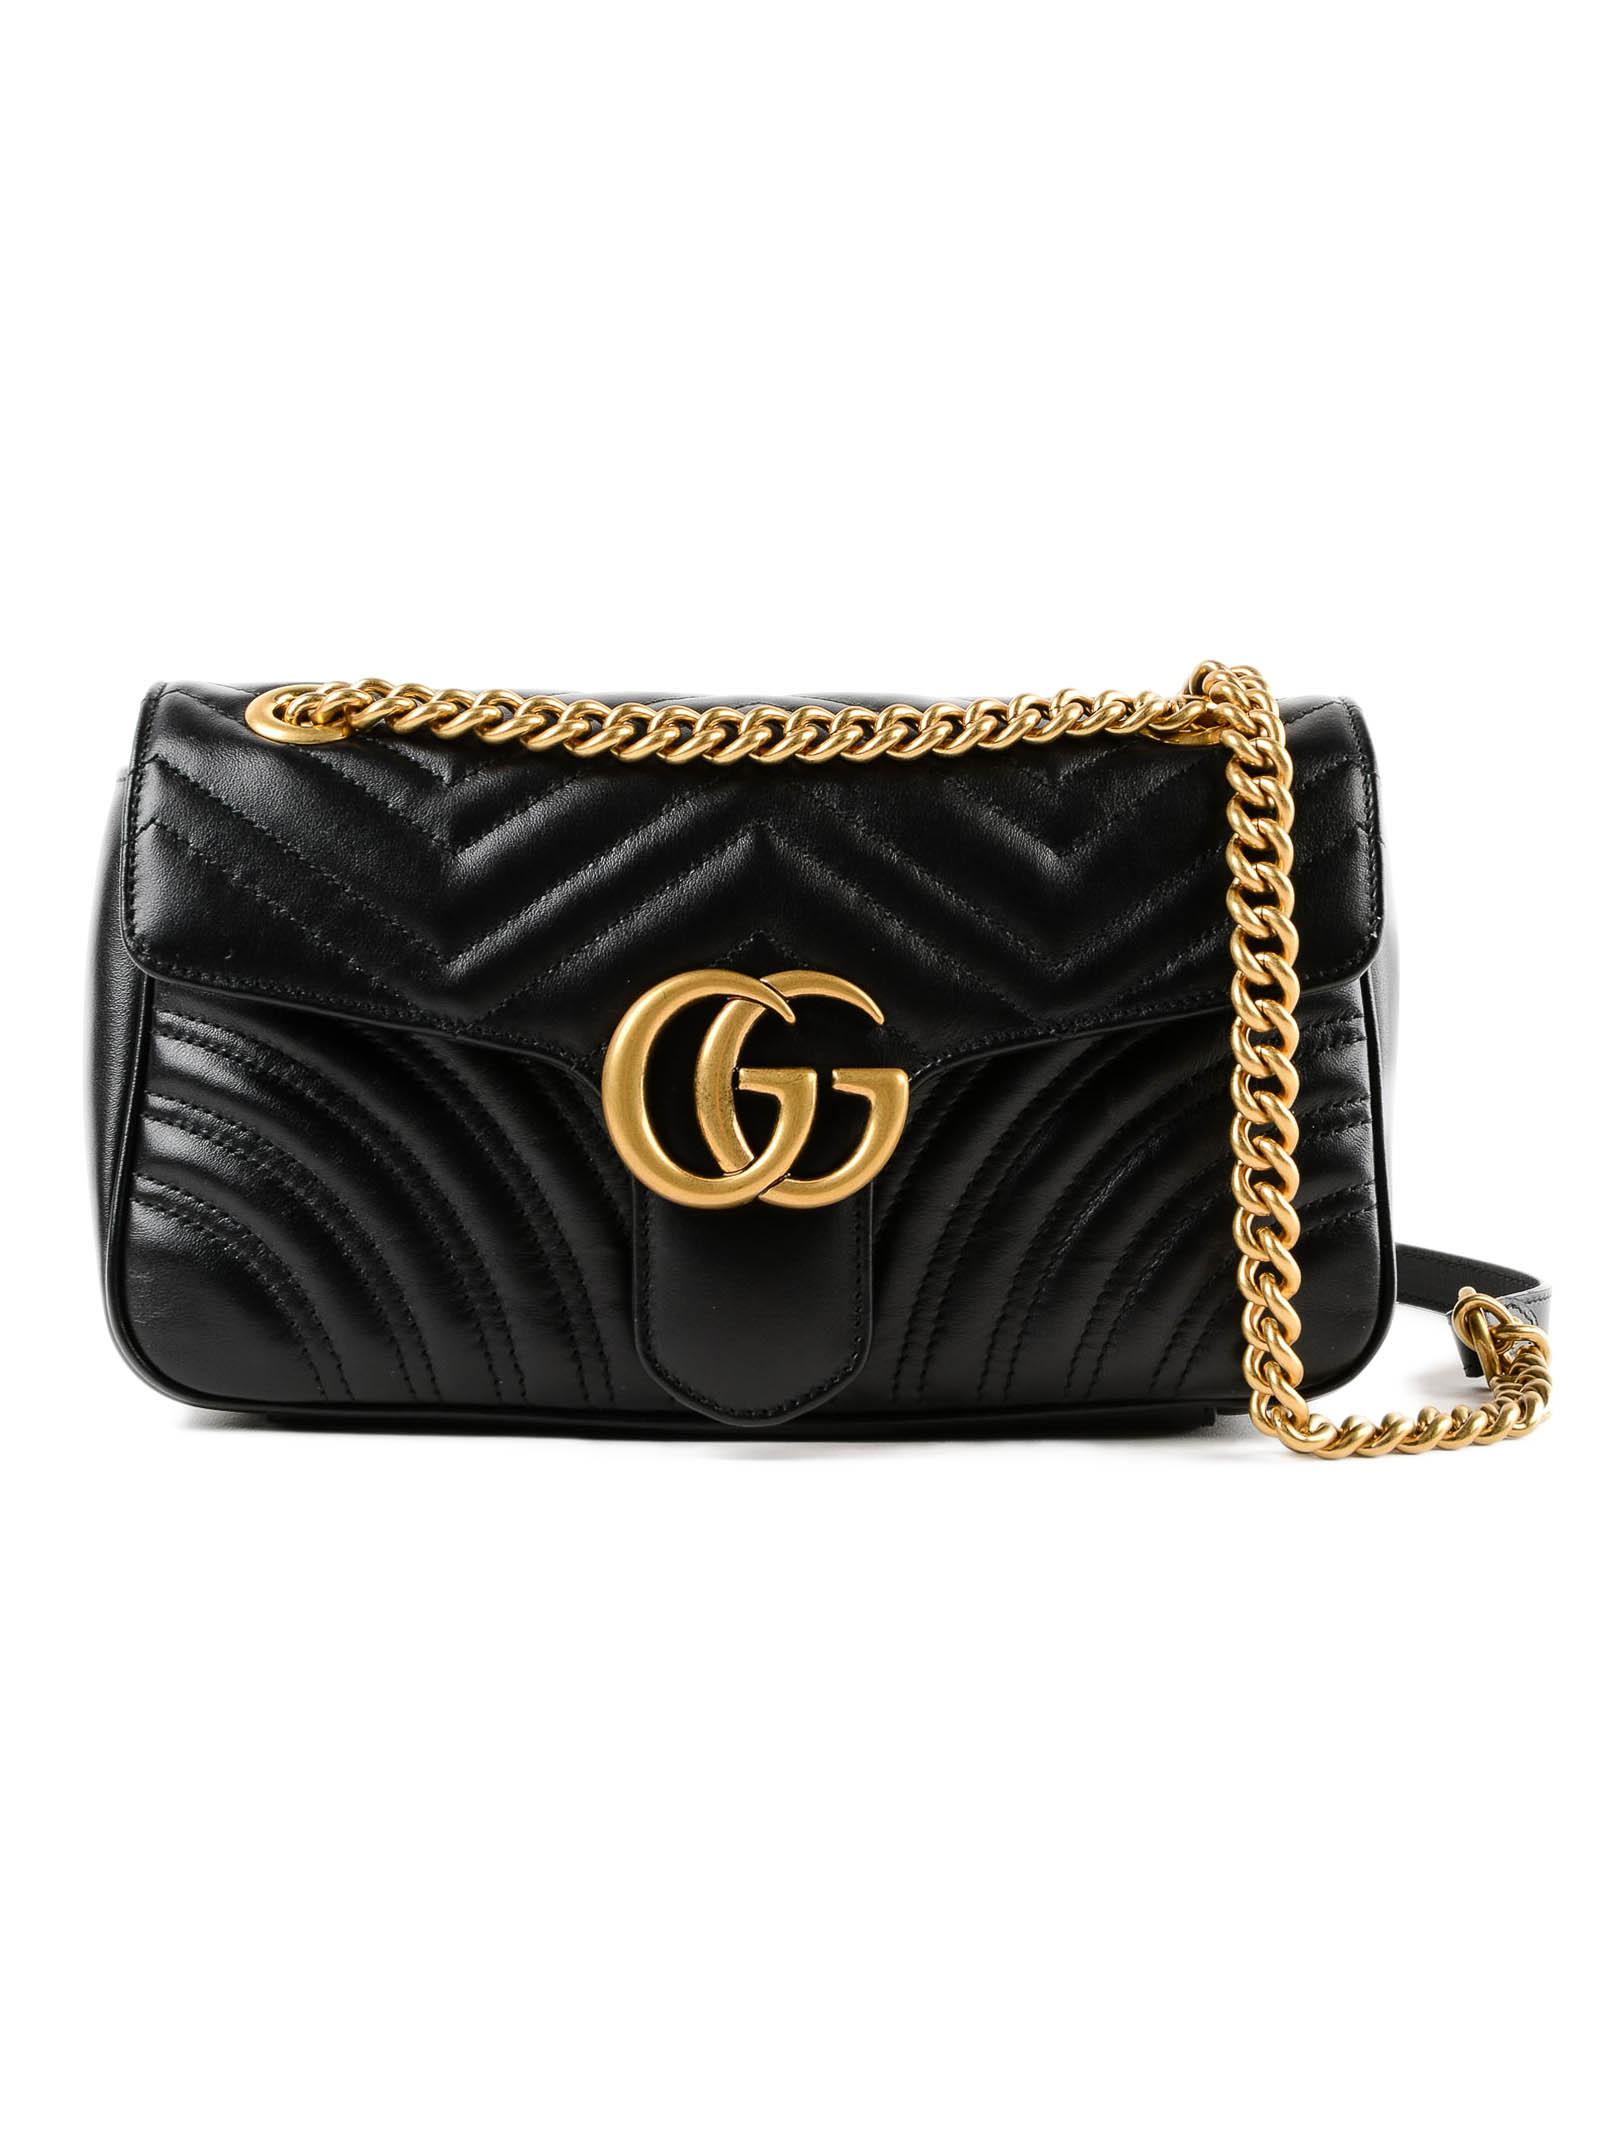 42ecd6f04689 Lyst - Gucci W Gg Marmont 2.0 Bag in Black